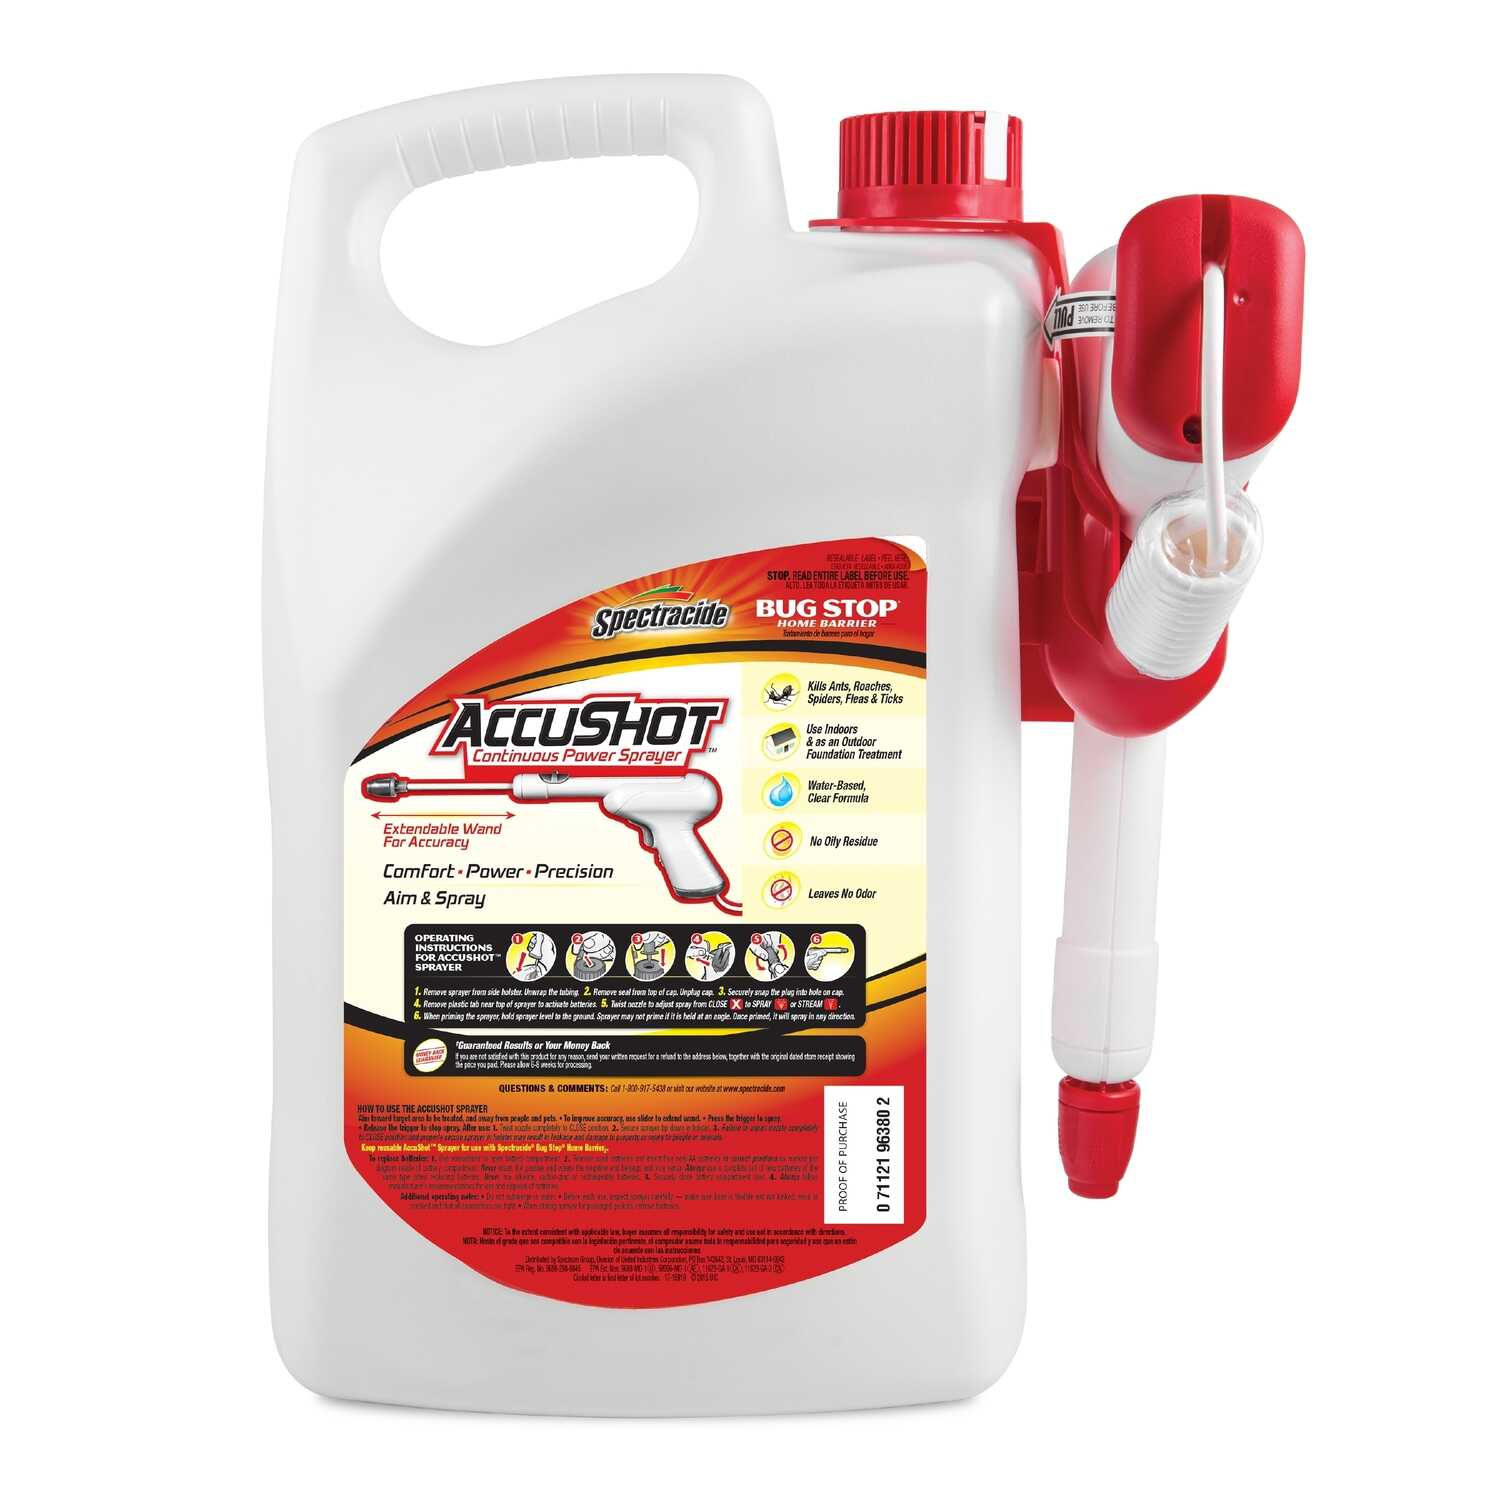 Spectracide  Bug Stop Home Barrier  Insect Killer  1.33 gal.